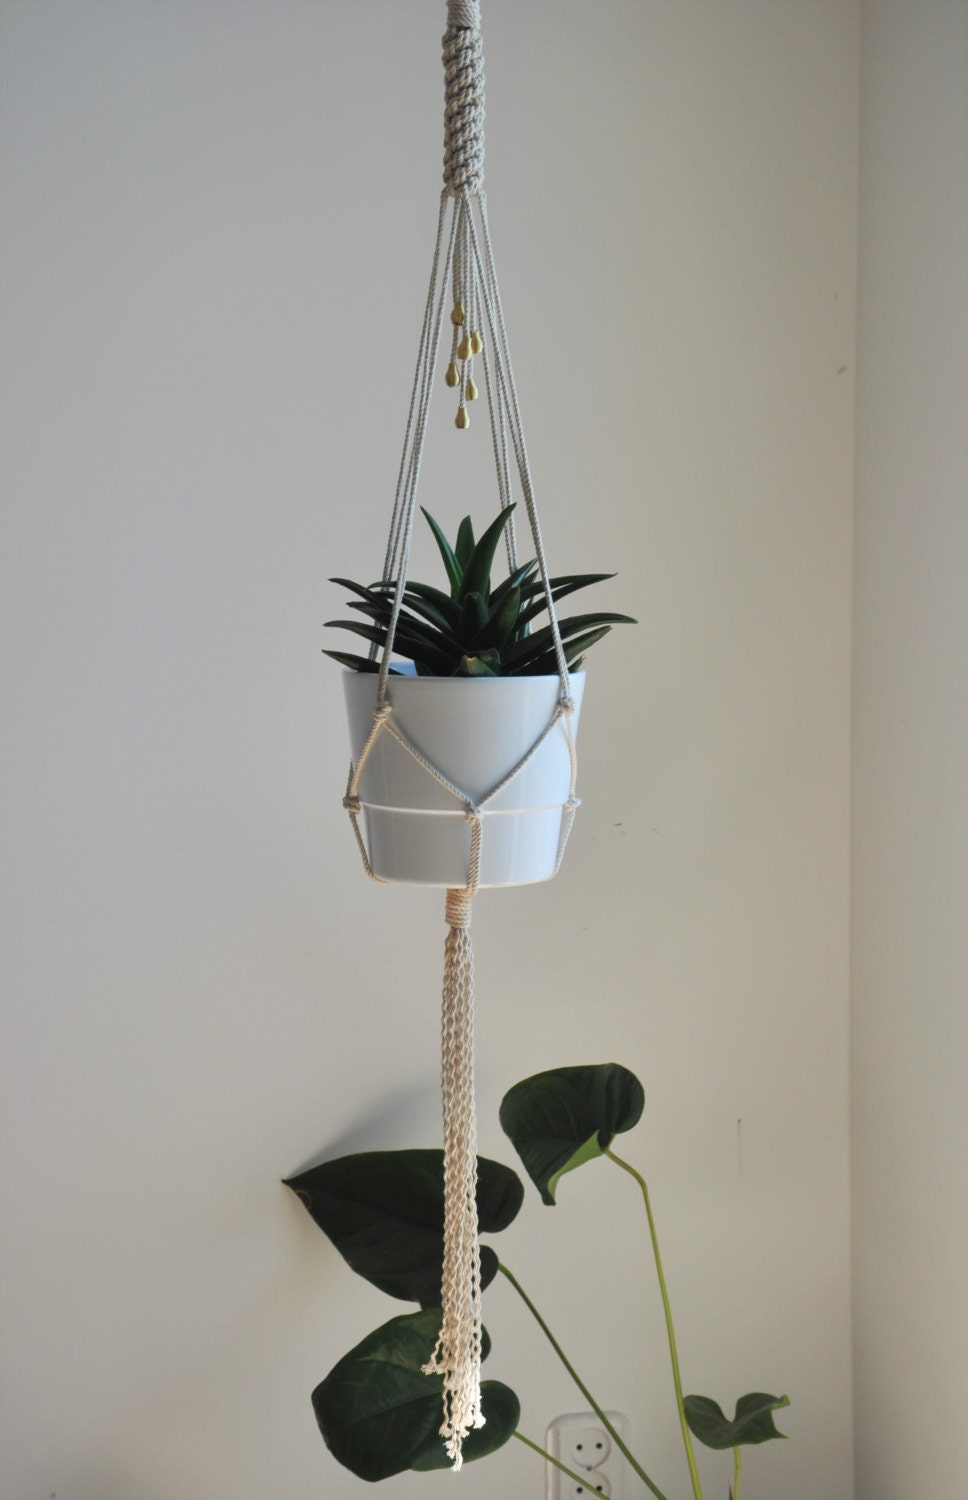 Plant Hanger Hanging Planter Macrame Wall Decor Macrame